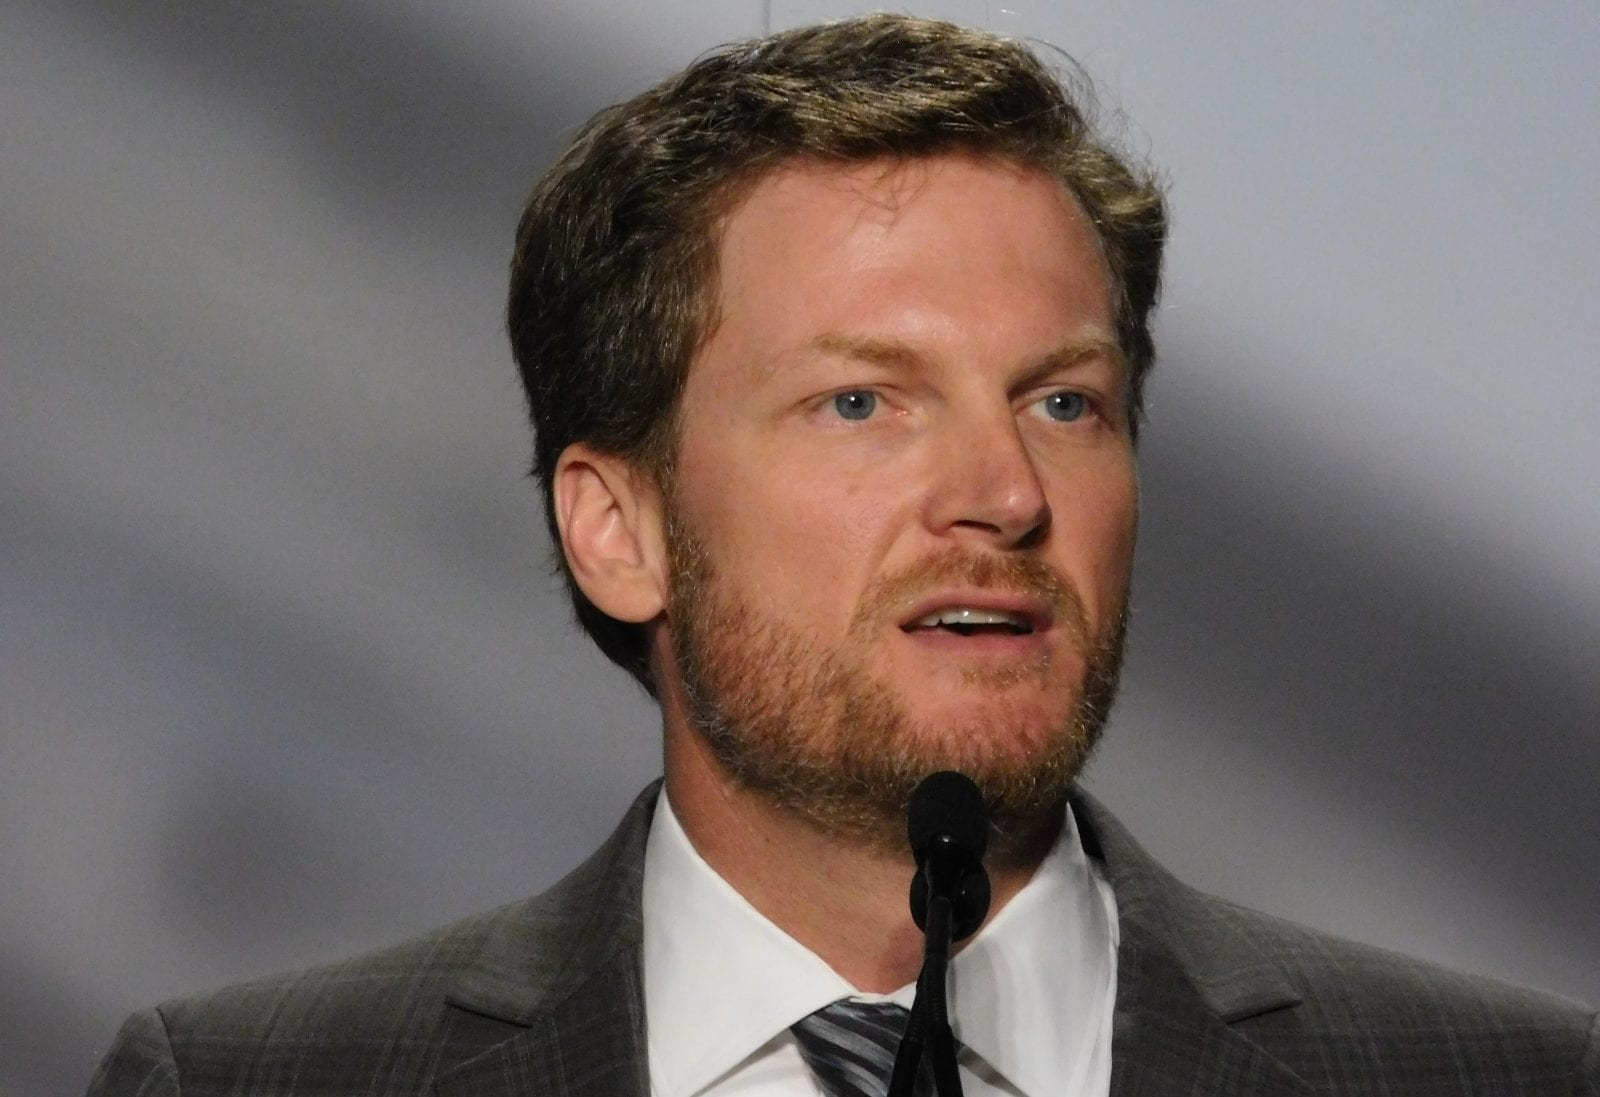 dale earnhardt jr welcomes the birth of his daughter isla rose